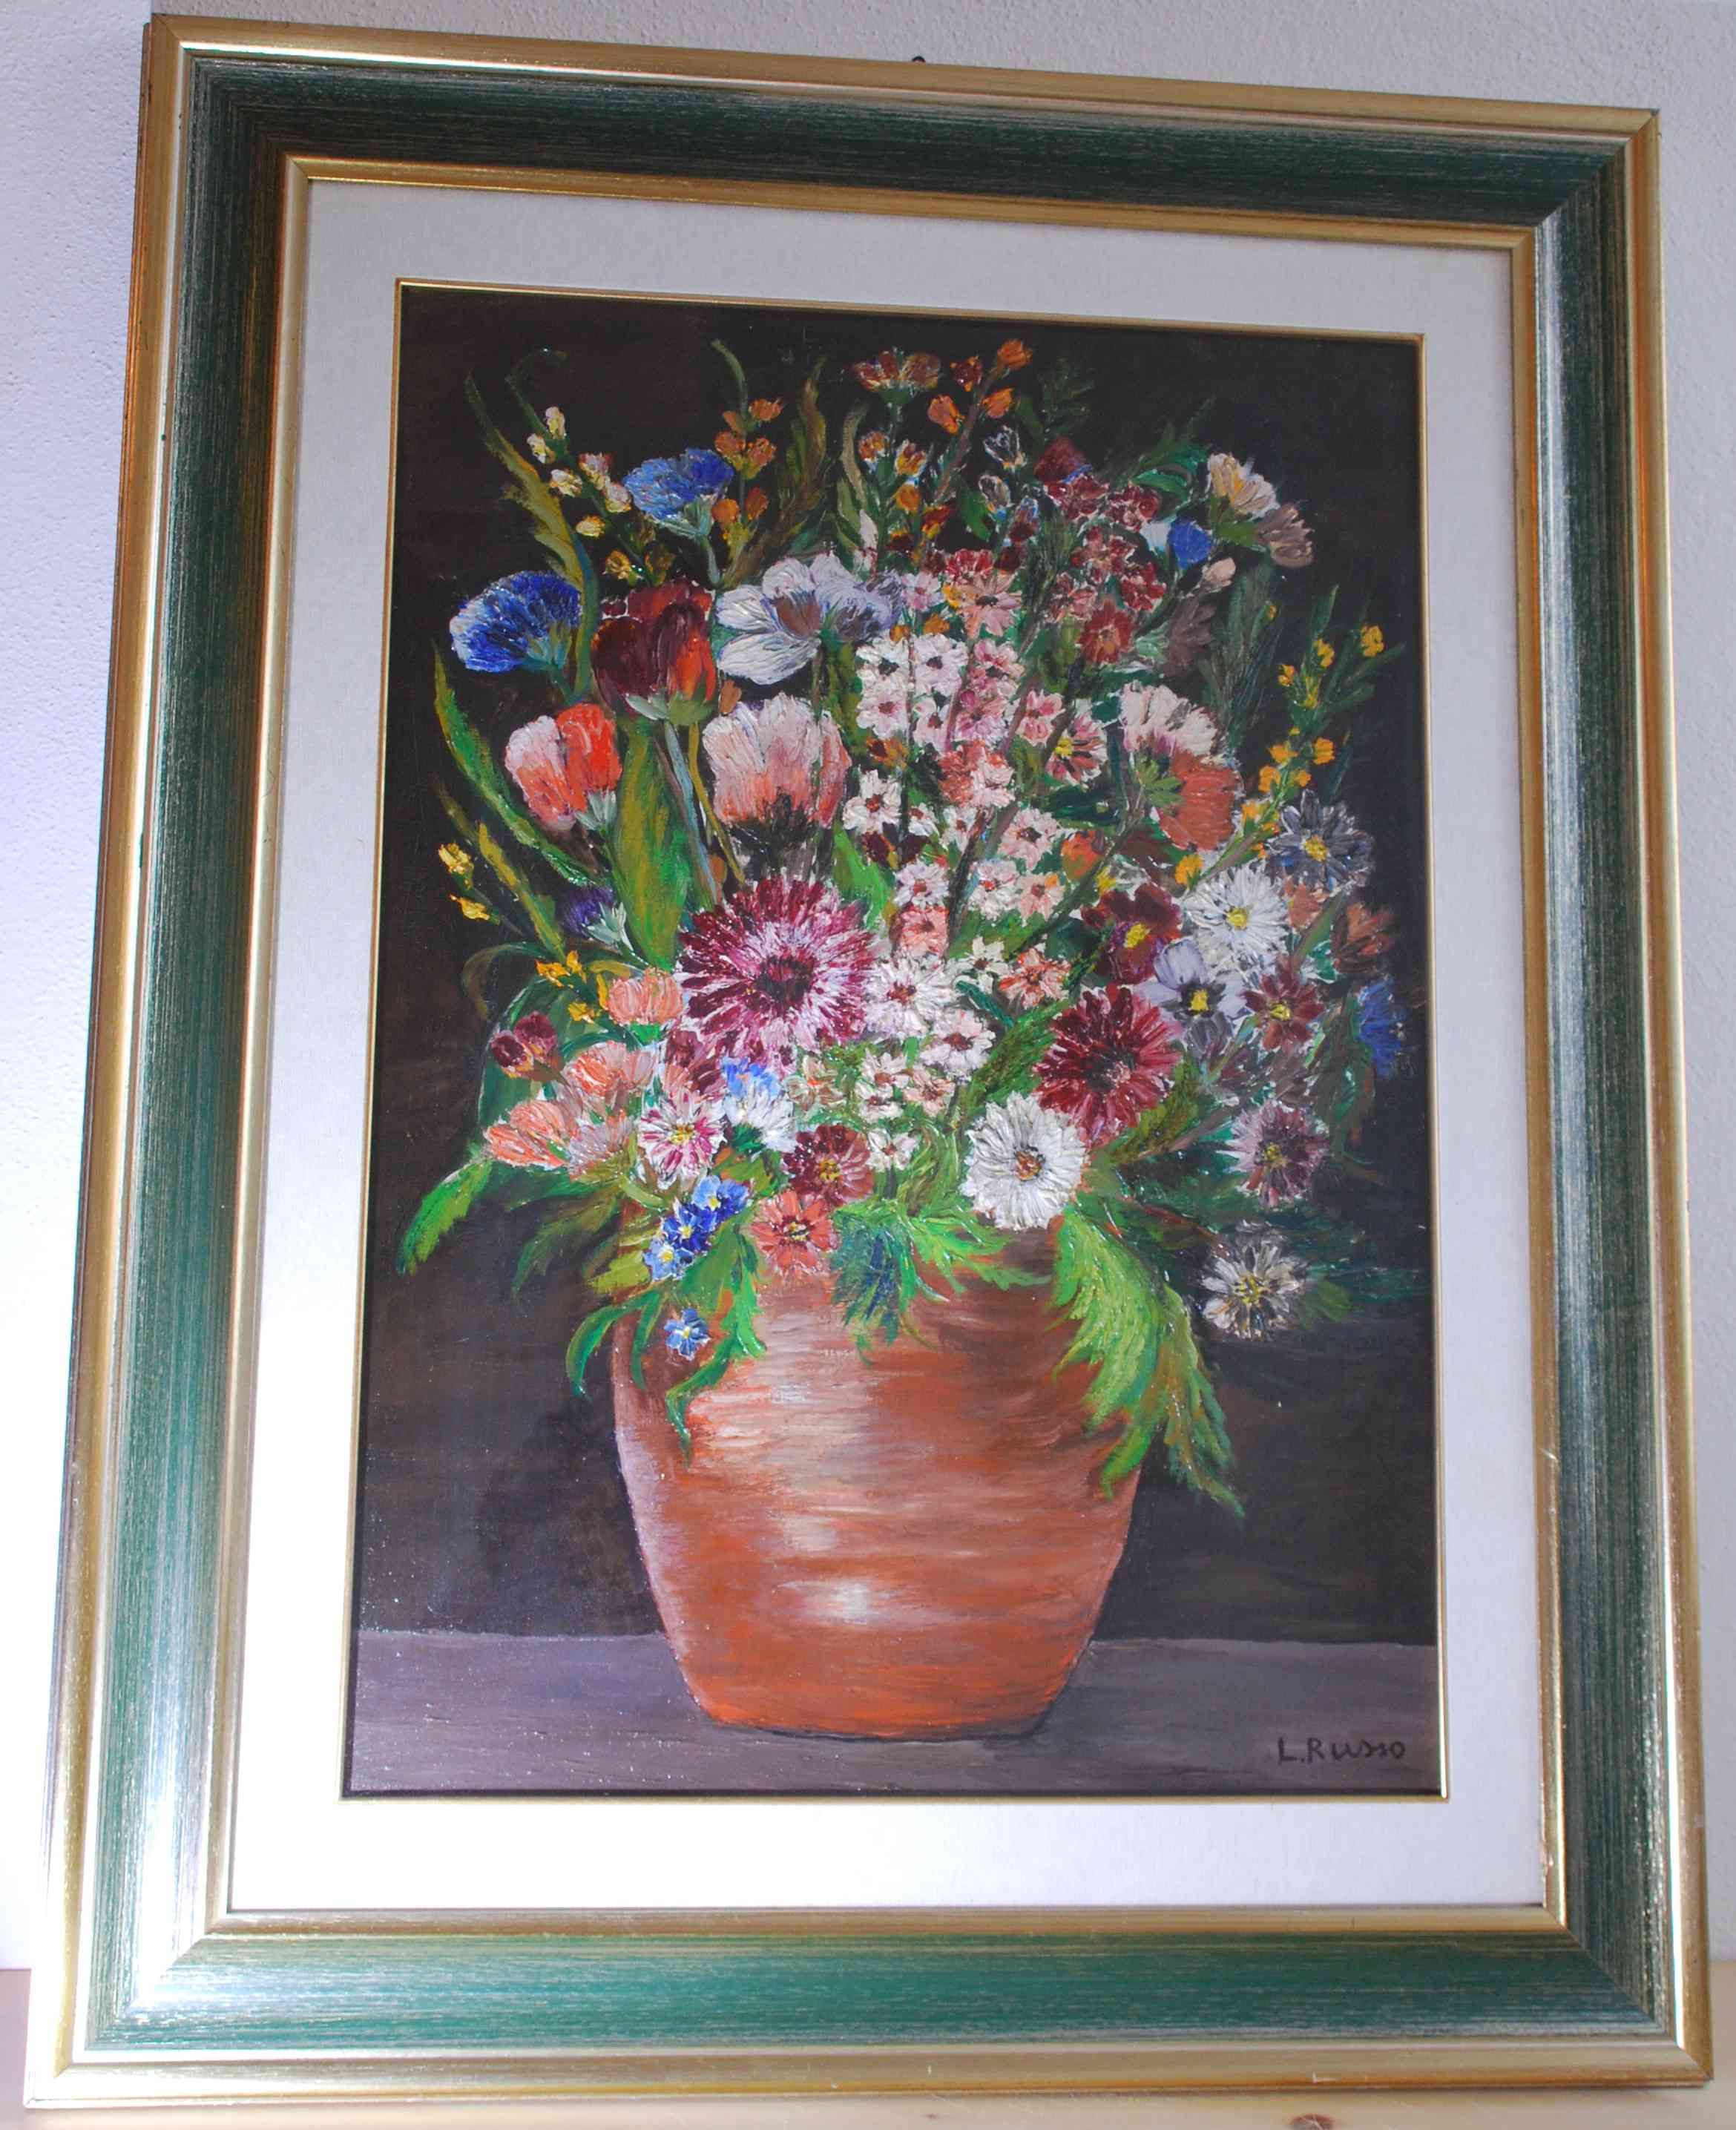 Pot of flowers (oil paint on canvas)